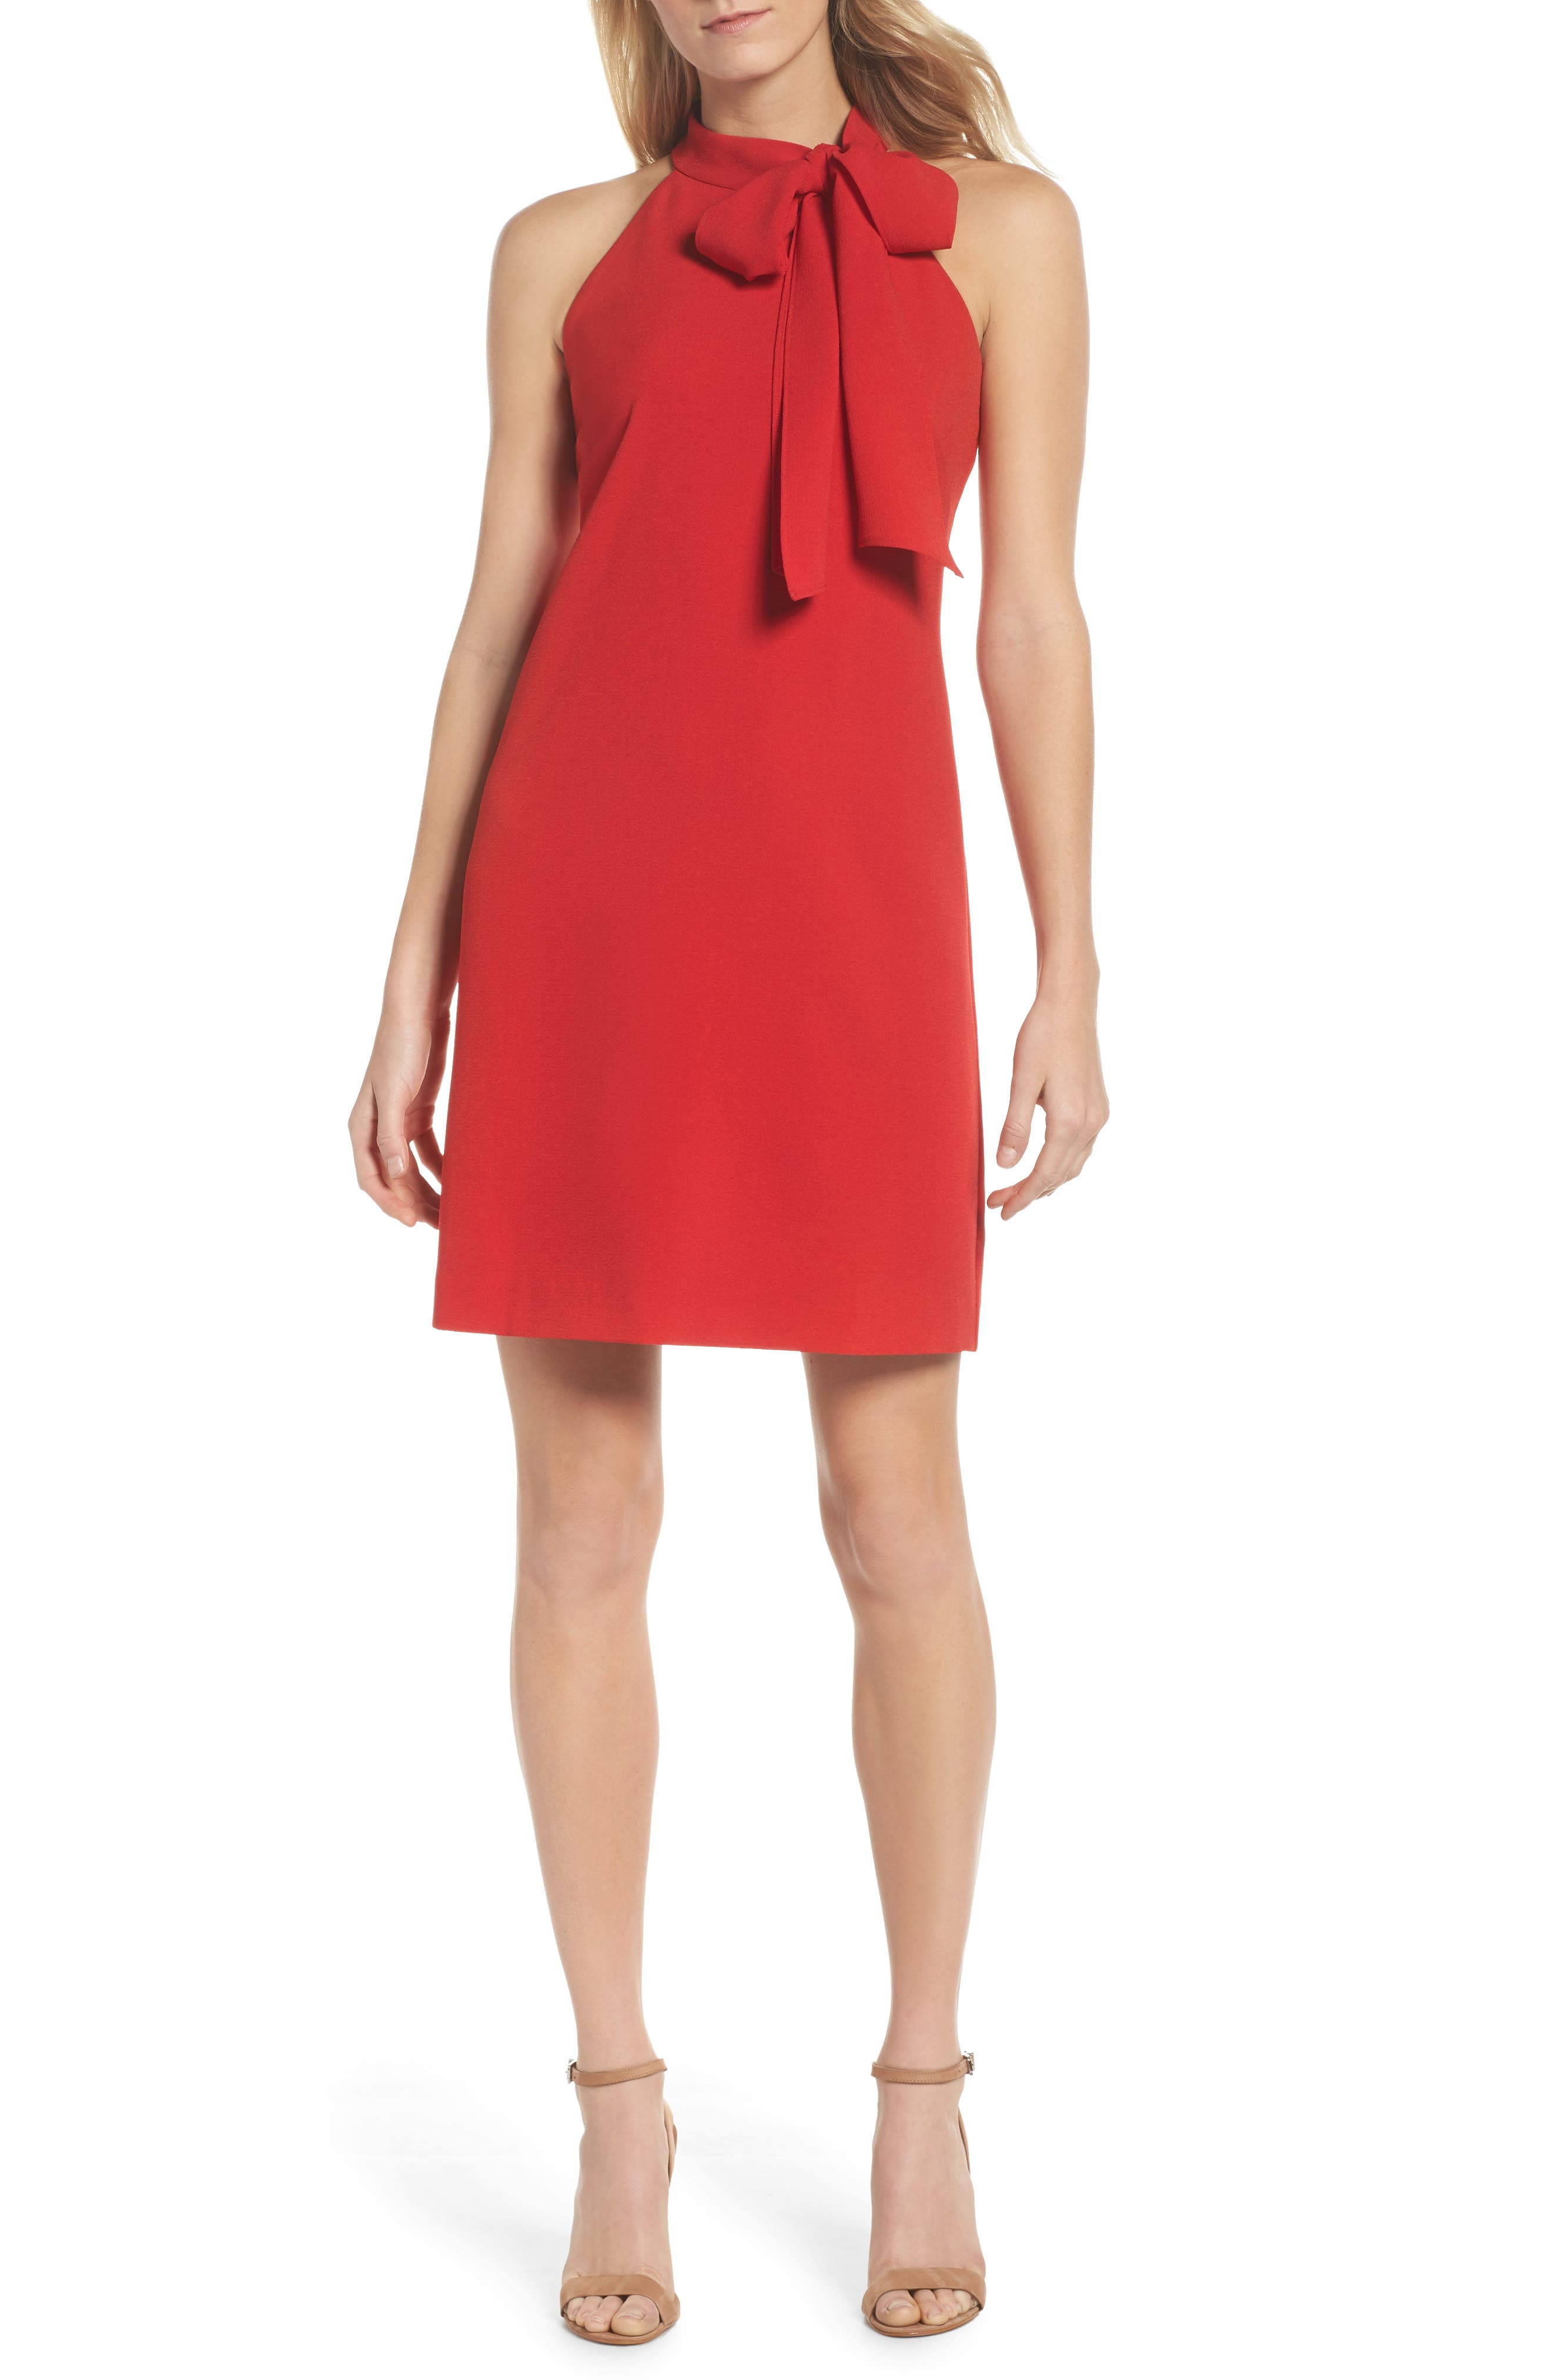 Alternate Image 1 Selected - Vince Camuto A-Line Dress